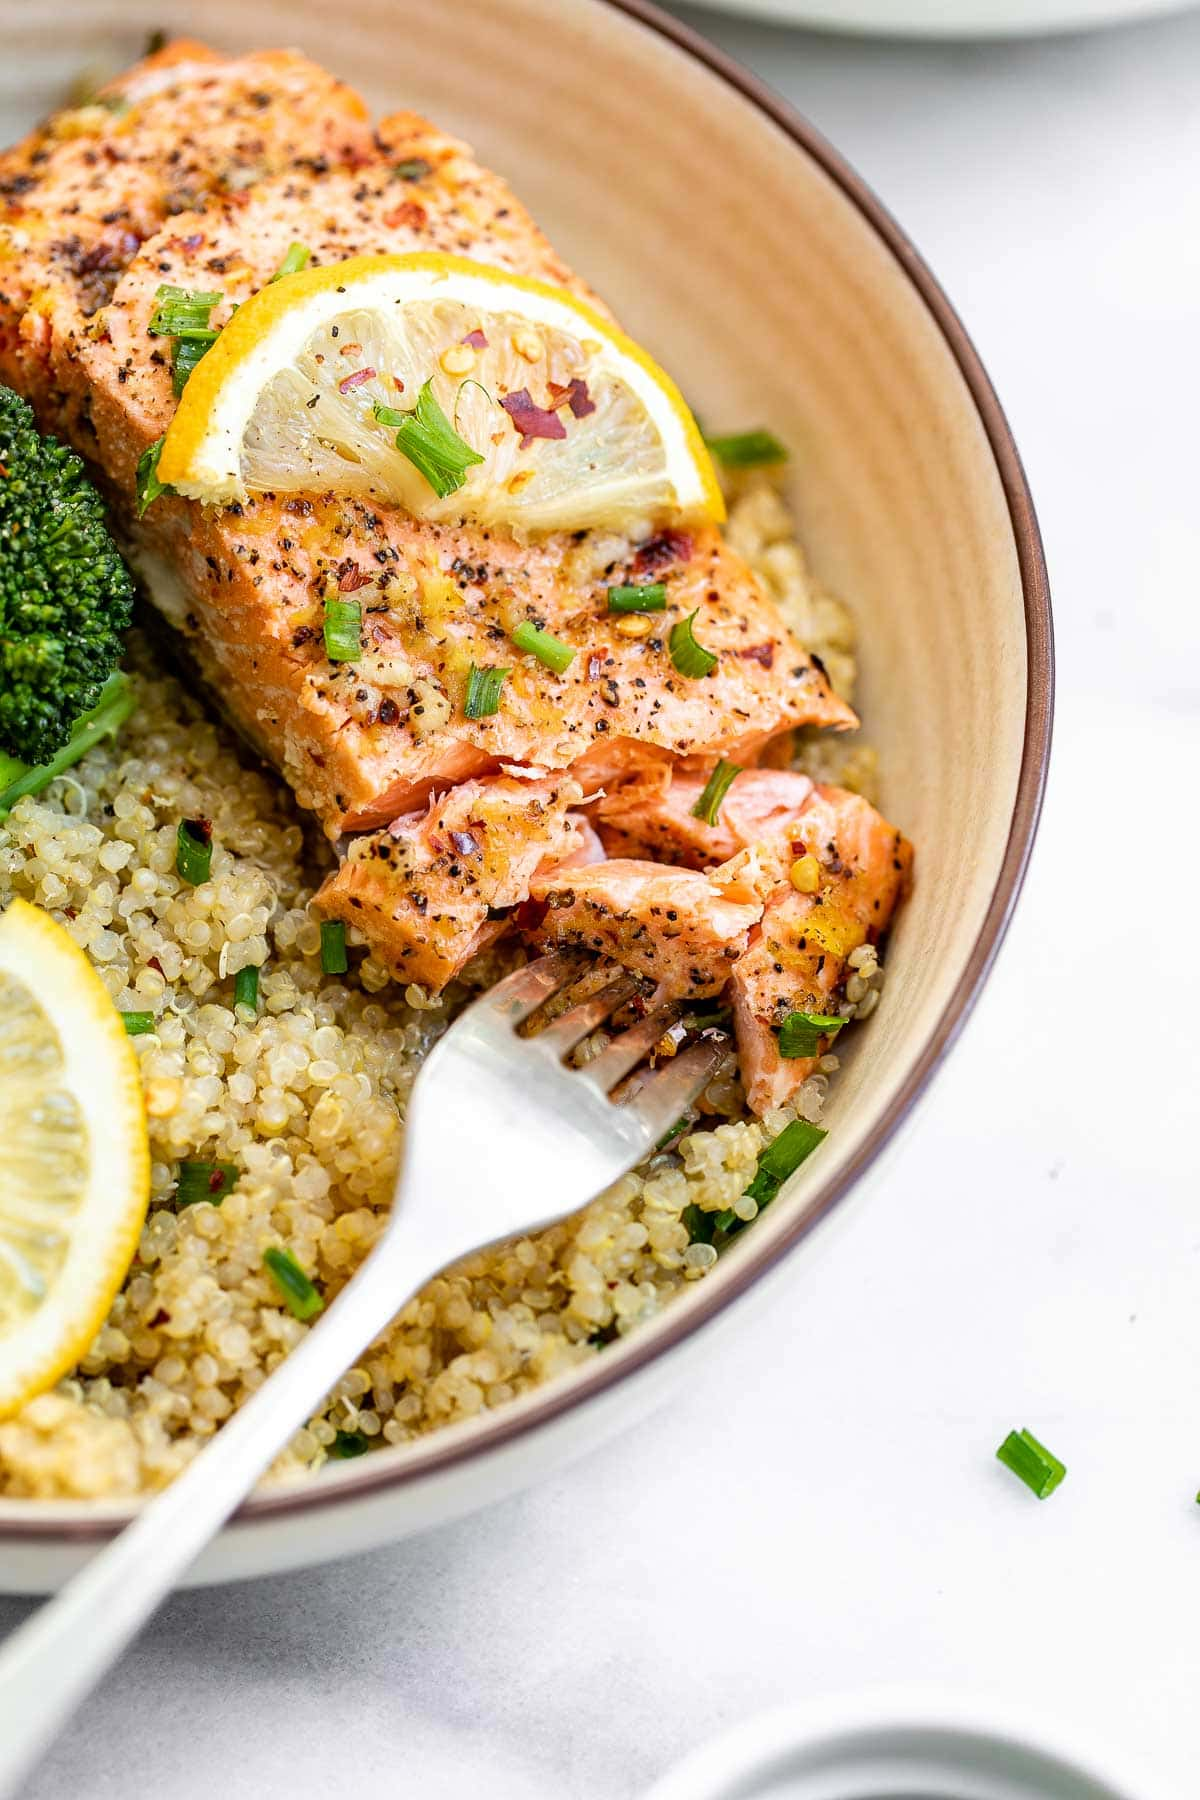 Up close image of the lemon pepper salmon with a fork taking a bite.